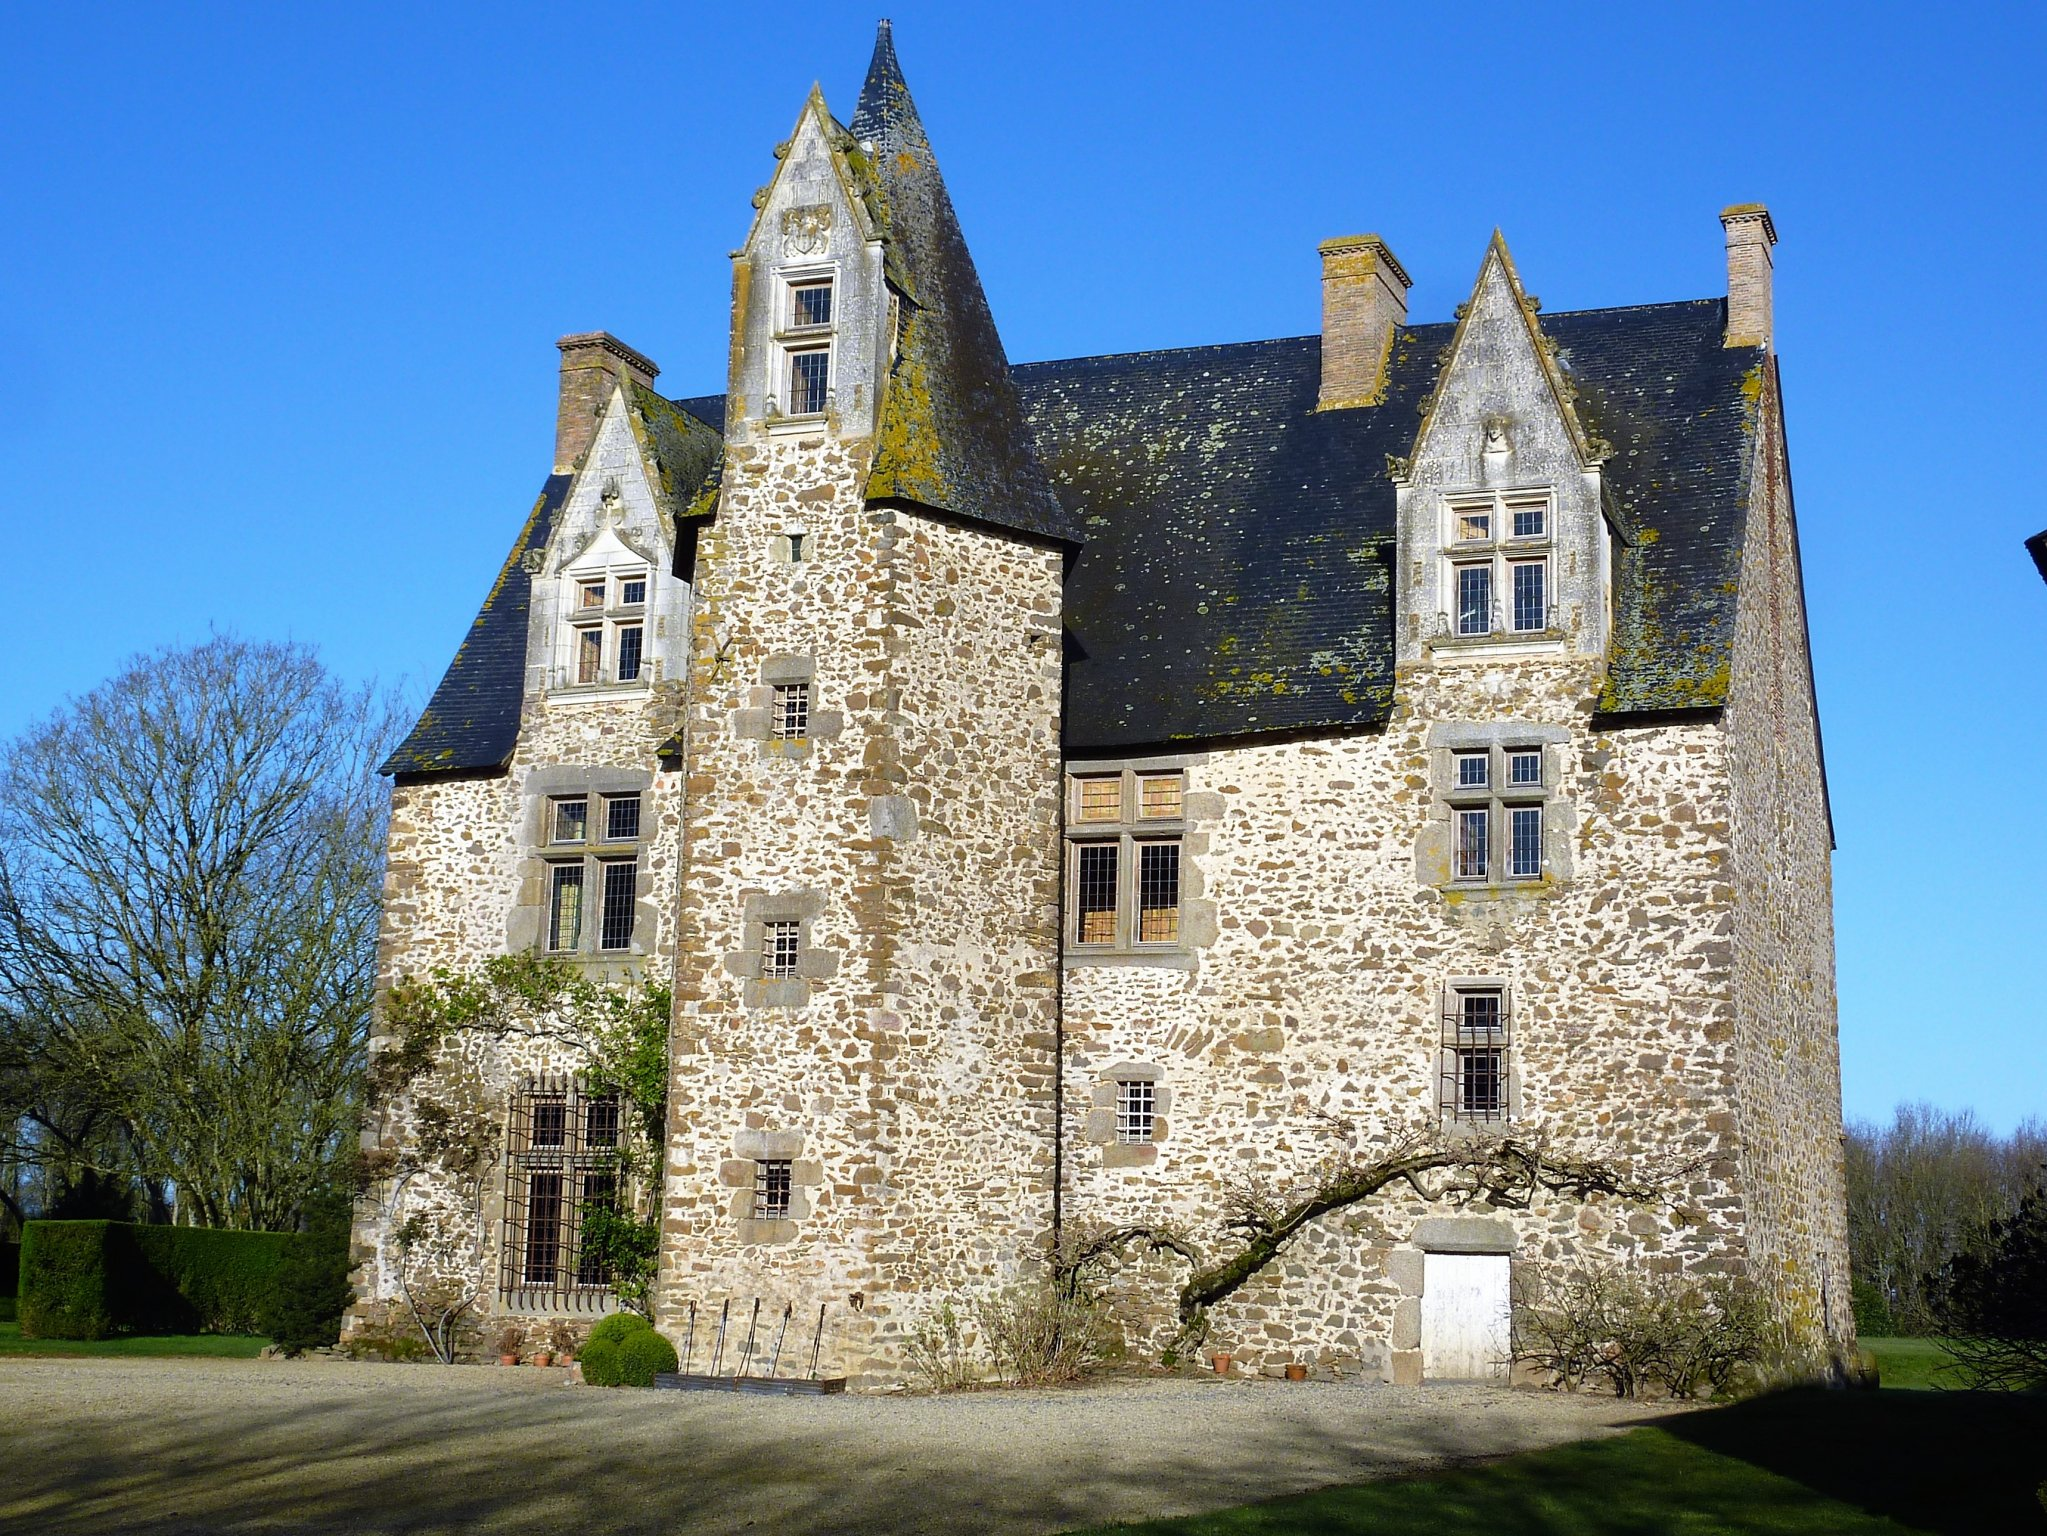 Fabulous 16th C listed Manor house - lake+outbuildings